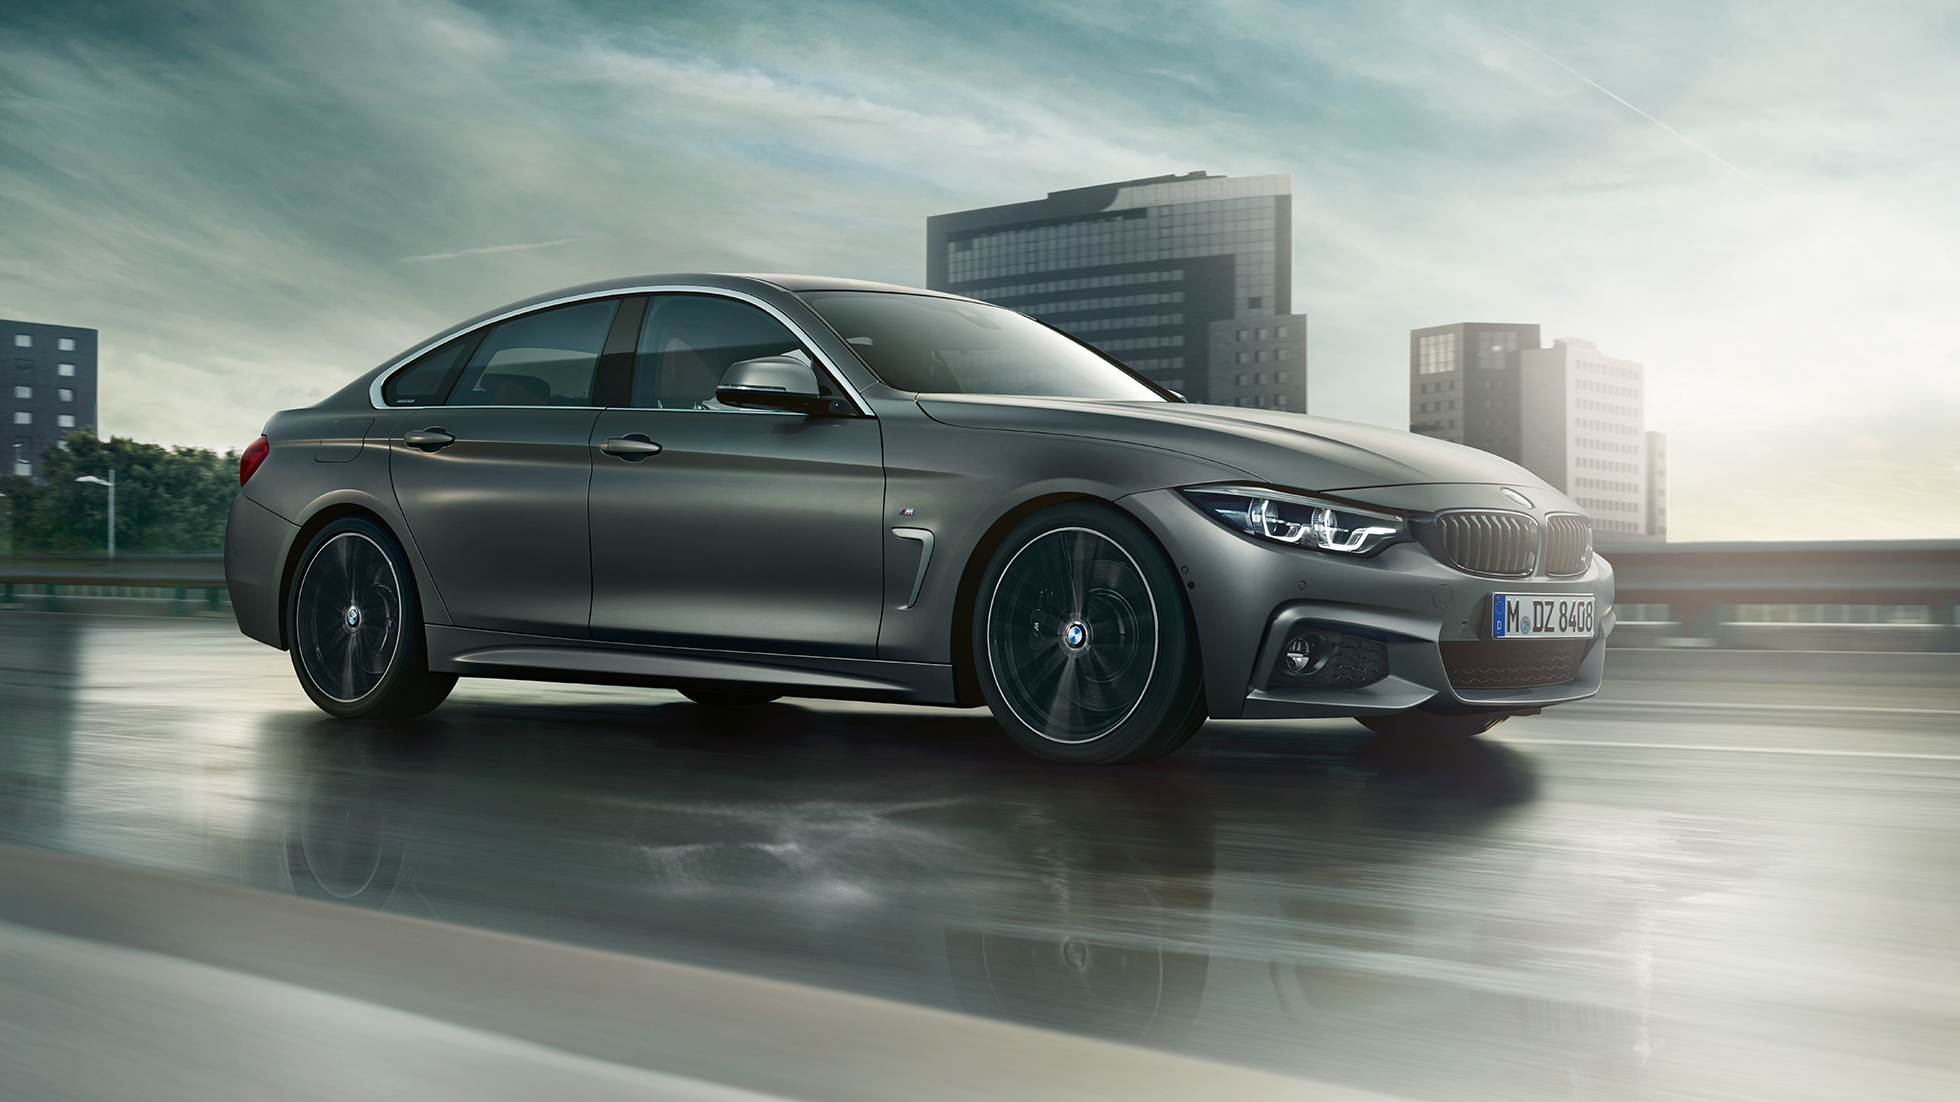 BMW 4 Series Gran Coupé, still shot of the front